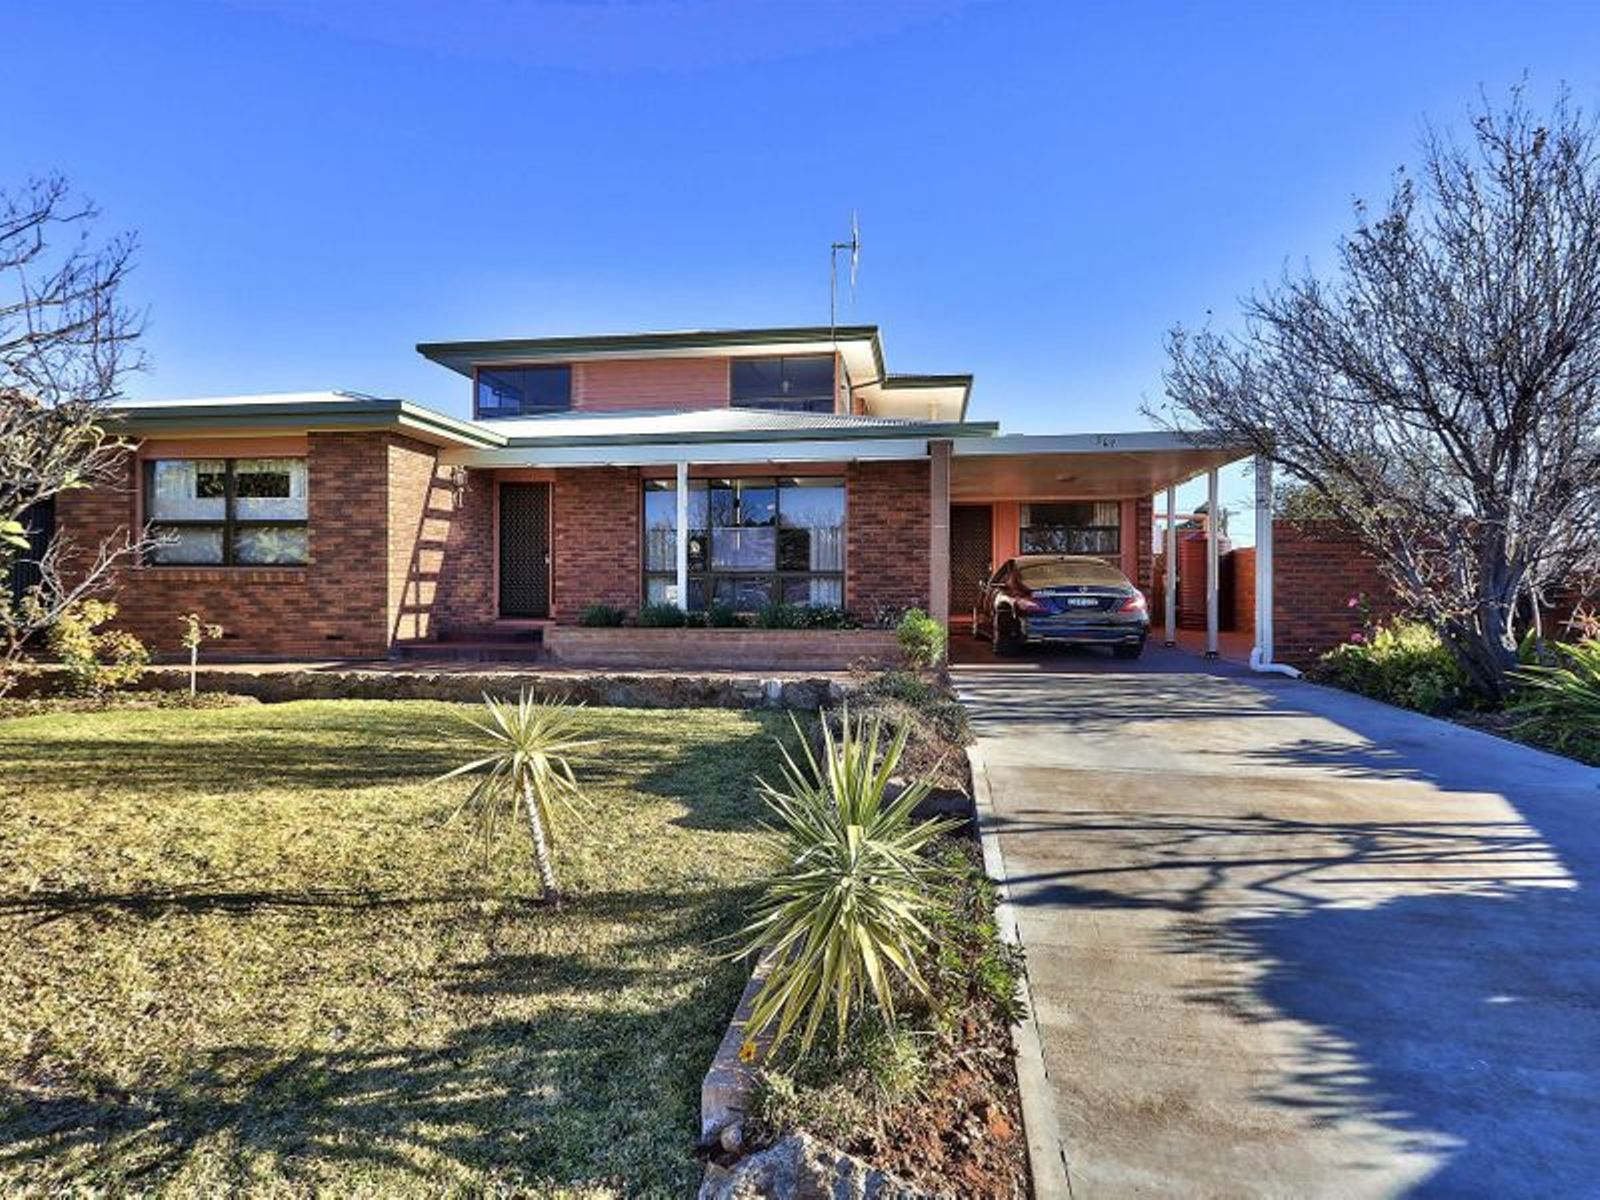 367 McCulloch Street, Broken Hill, NSW 2880